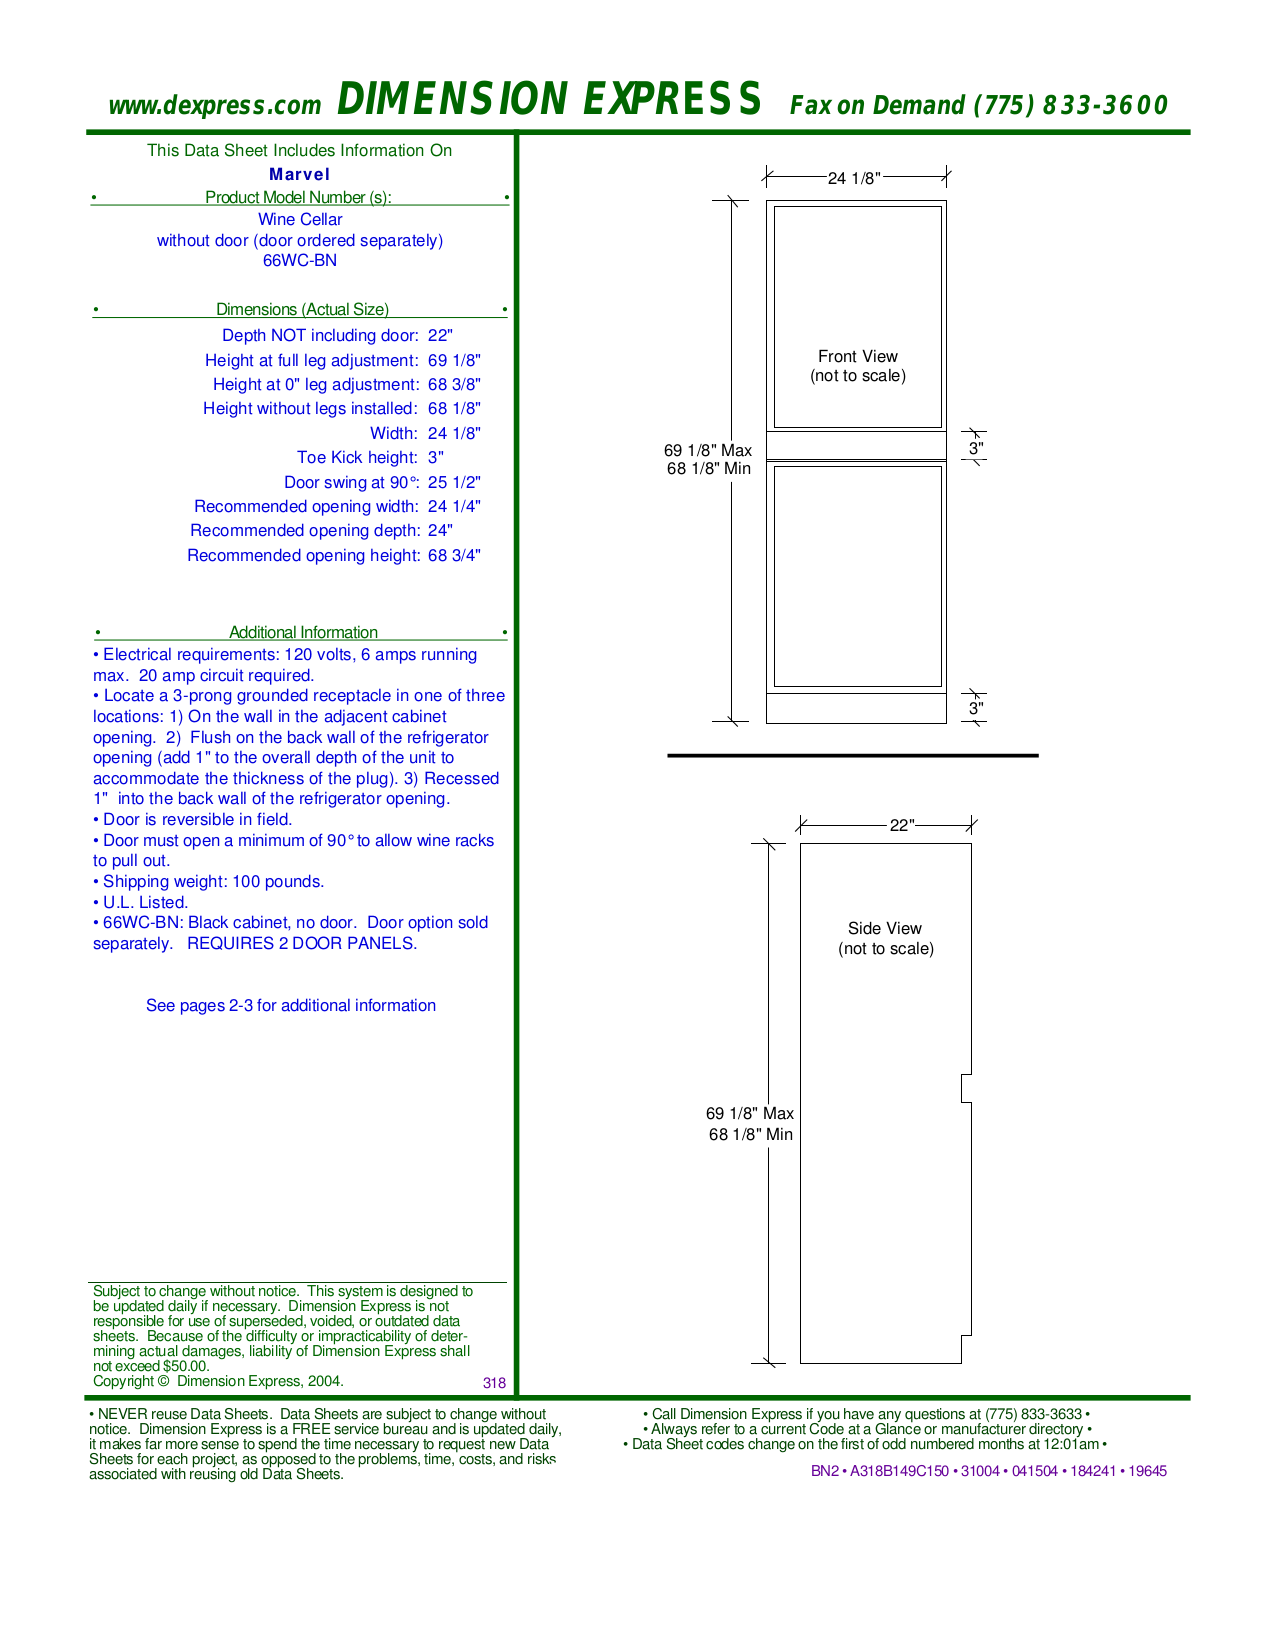 pdf for Marvel Refrigerator 66WCM-BN manual